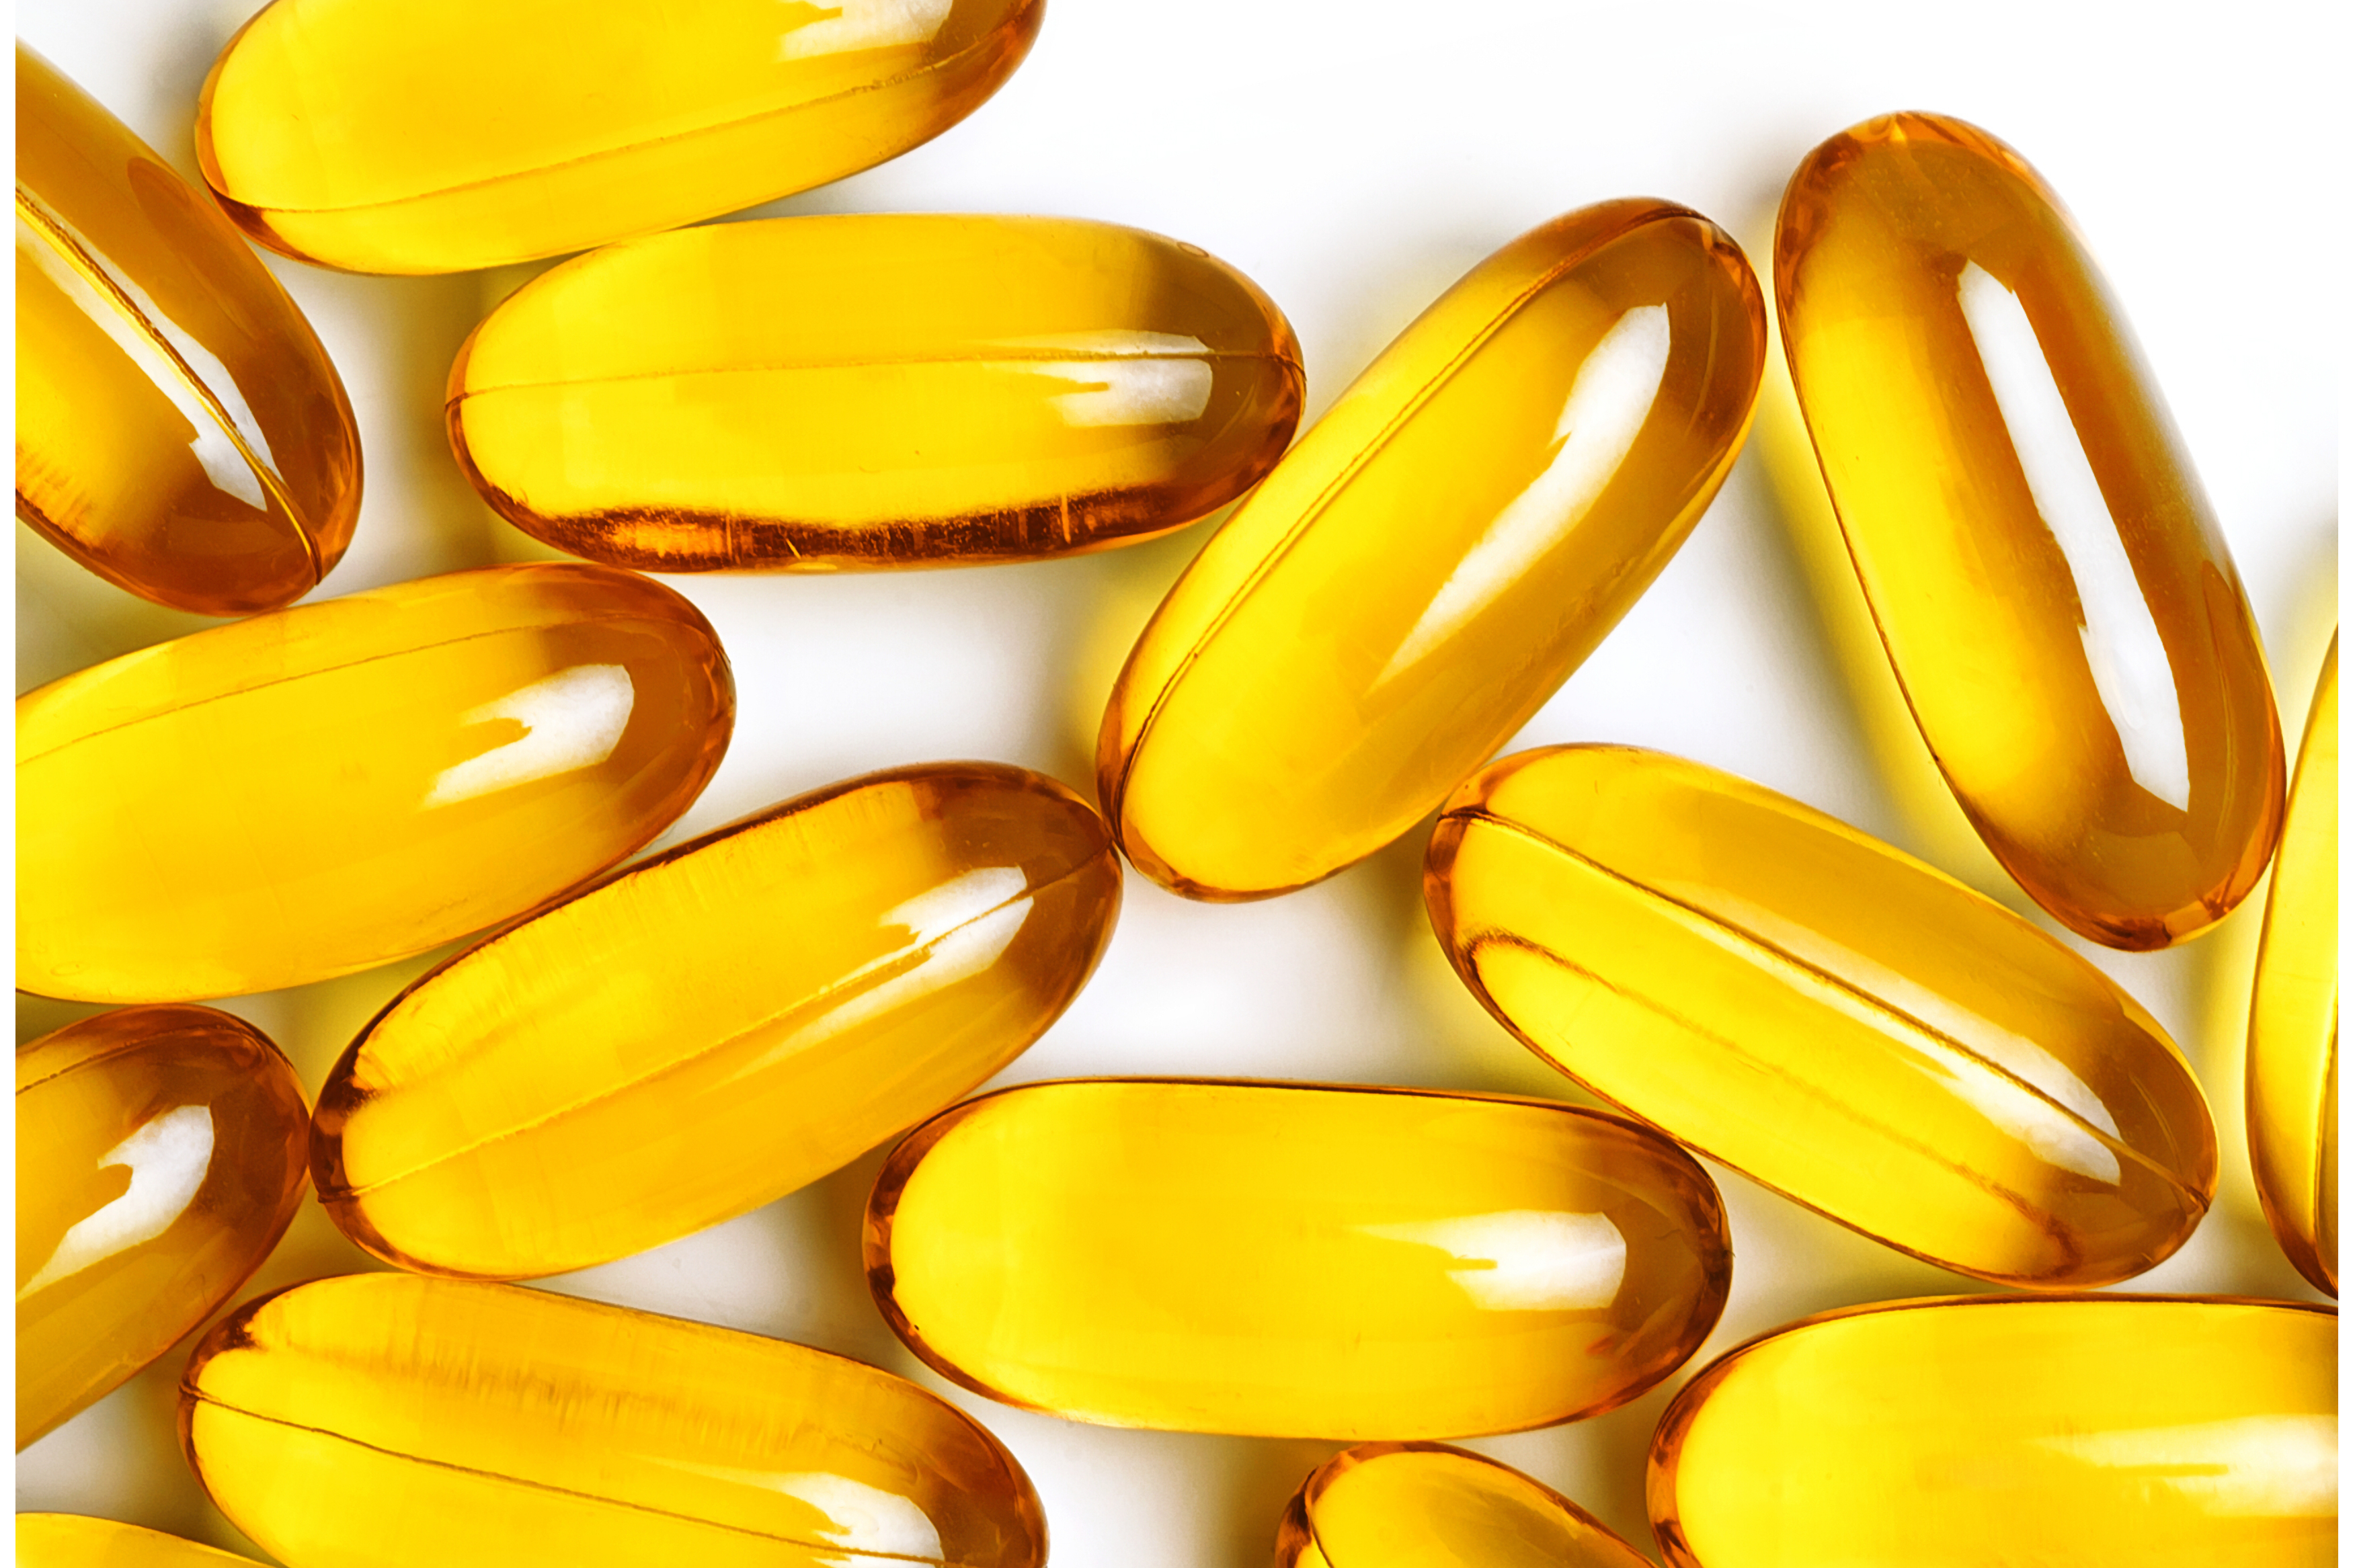 Fish oils can help treat anxiety